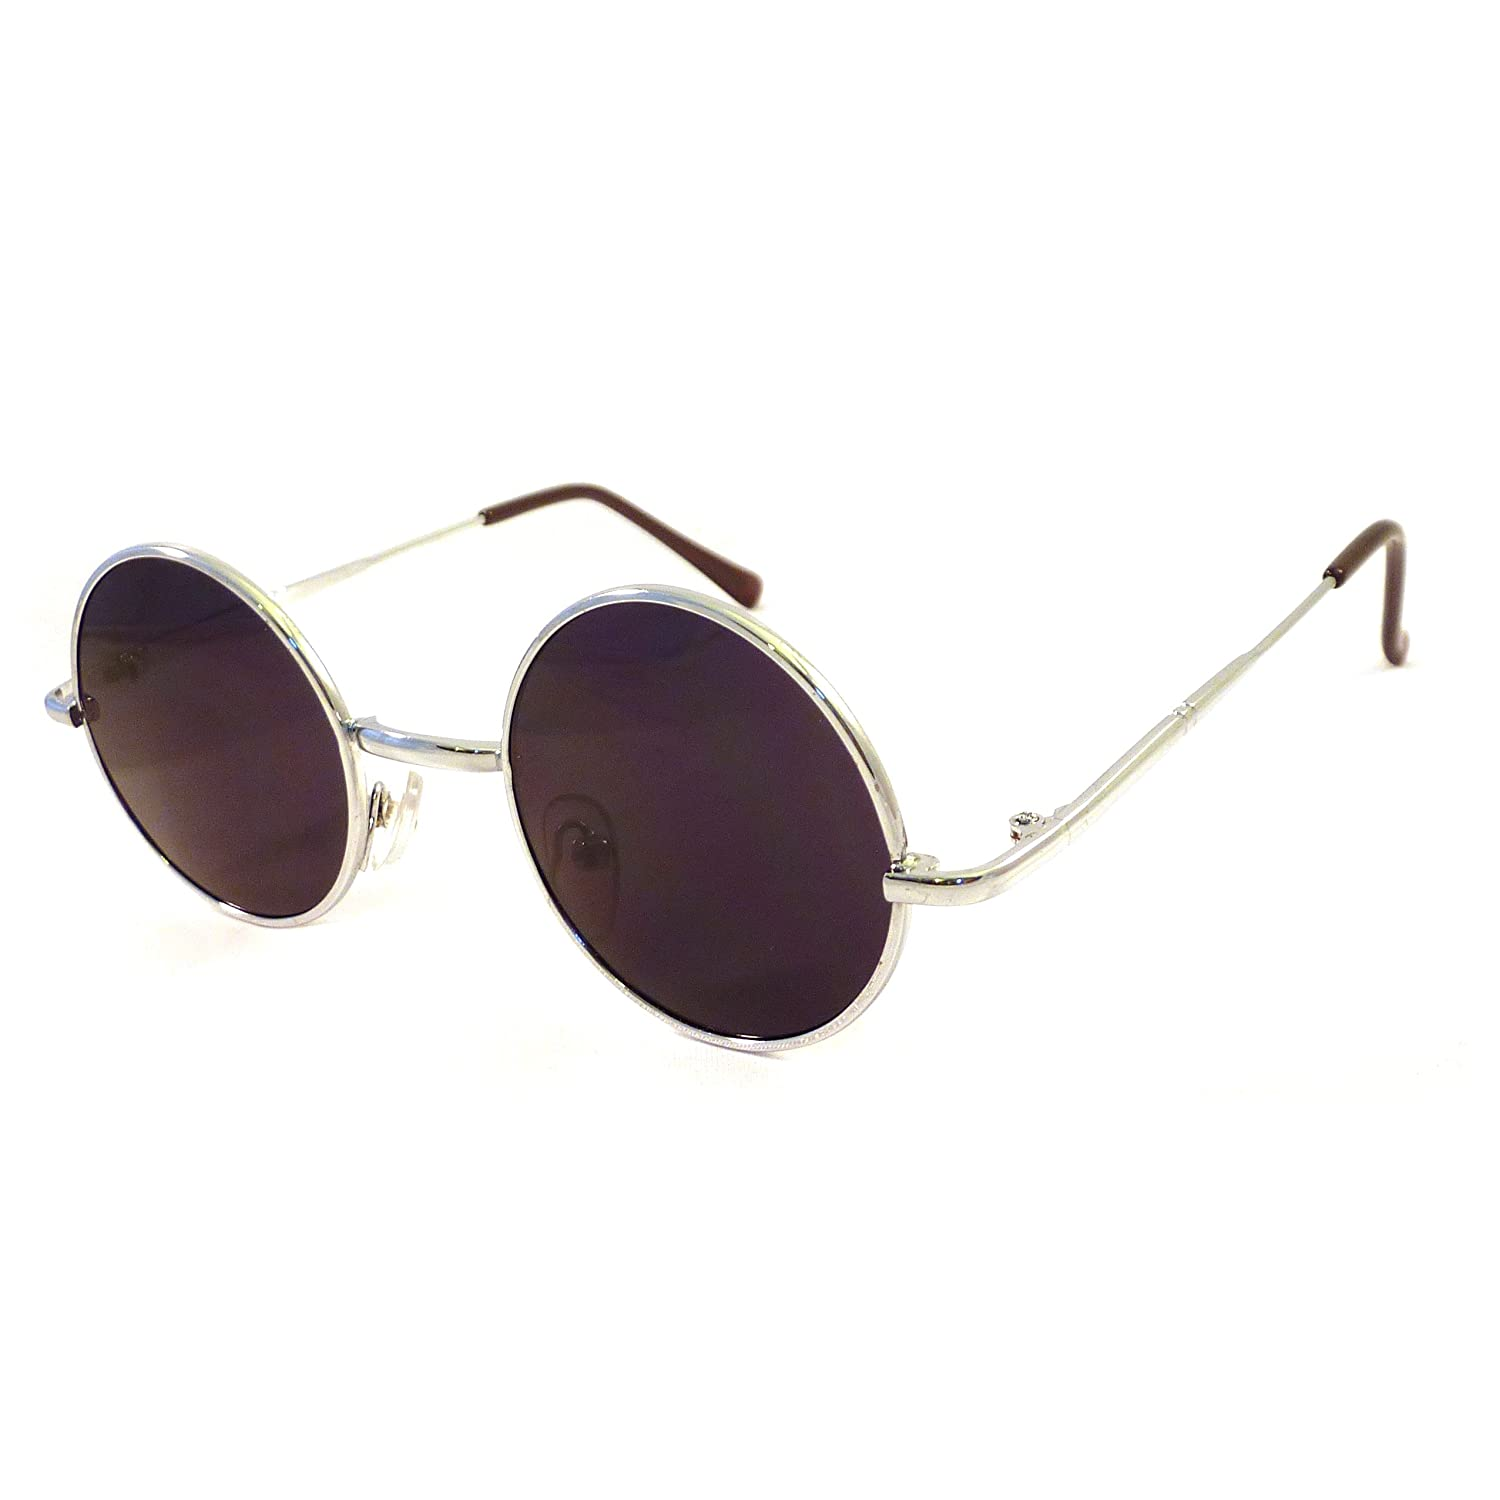 f57ddcbbba Amazon.com  VINTAGE 60s Lennon Style Small Round Metal Shades Sunglasses  SILVER SMOKE  Clothing